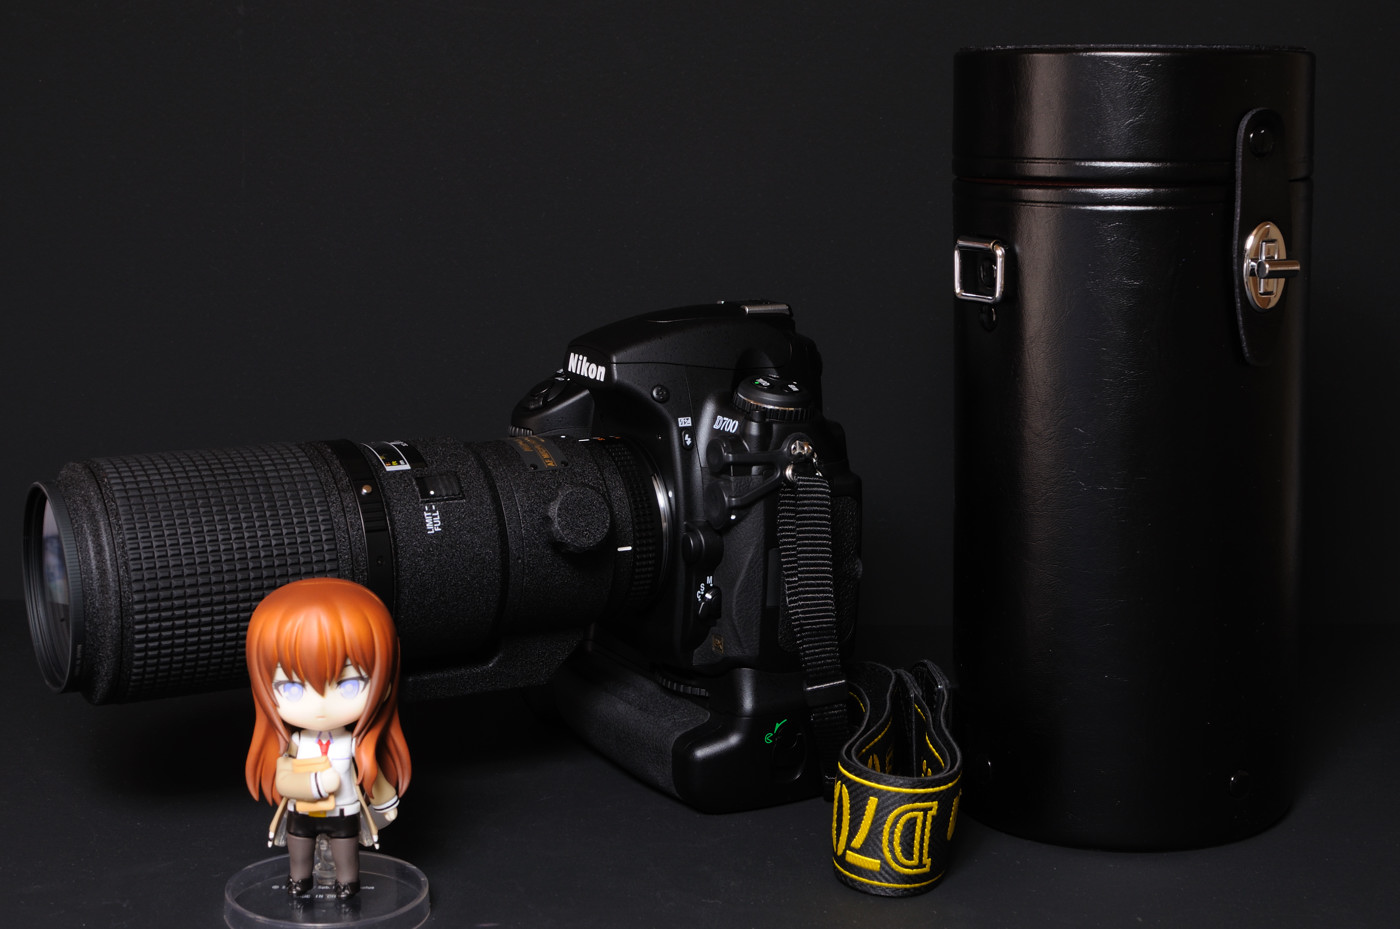 Ai AF Micro-Nikkor 200mm f/4D IF-EDでゲソ